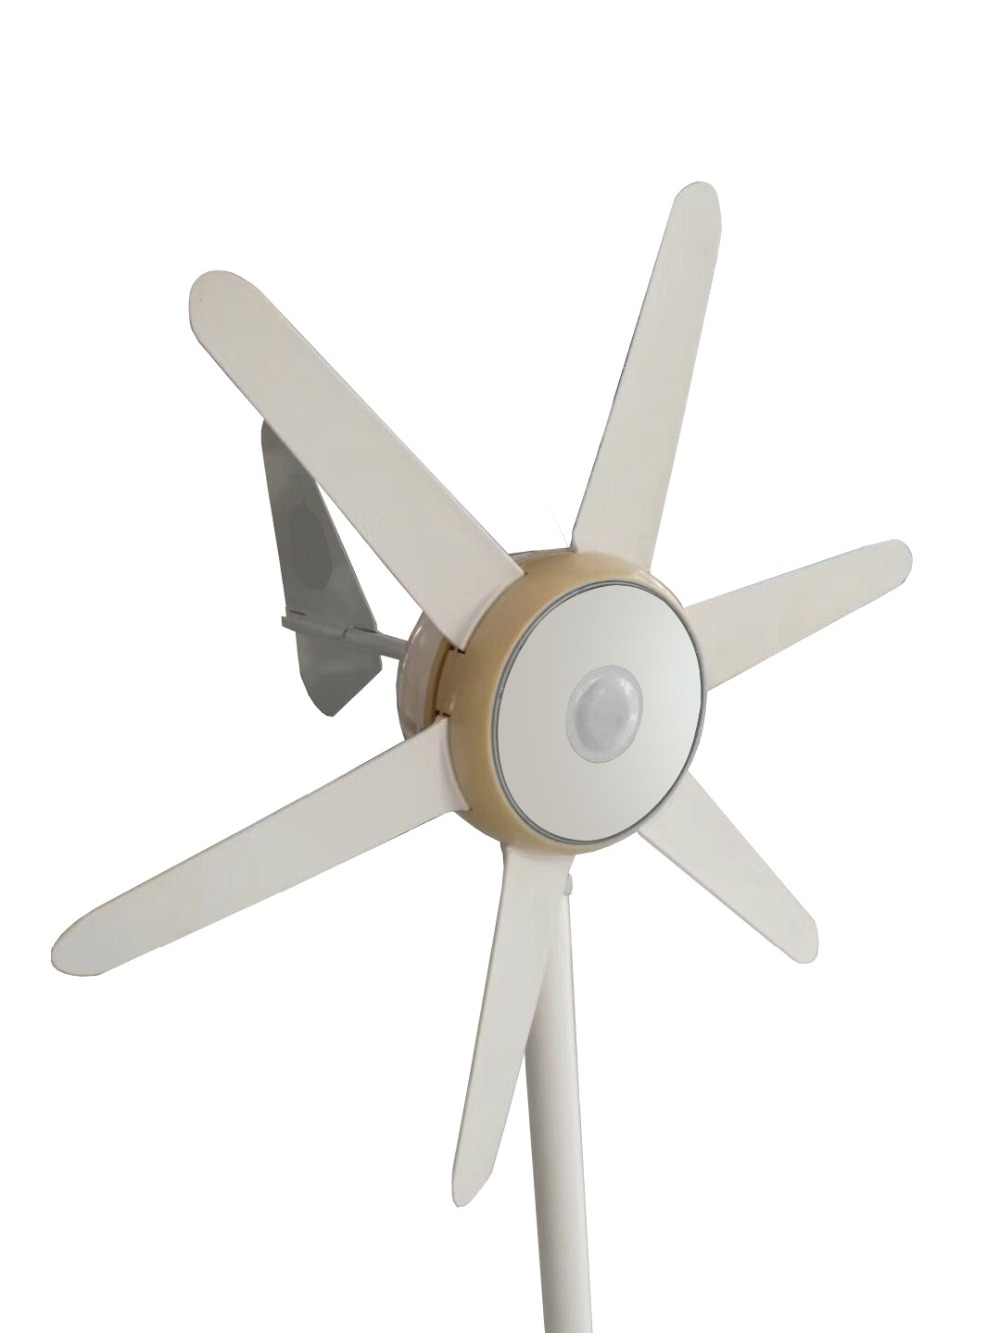 M-300 6 Blades Power Turbine Kit Wind Generator DC 12V/24V For Wind Energy System M-300 6 Blades Power Turbine Kit Wind Generator DC 12V/24V For Wind Energy System